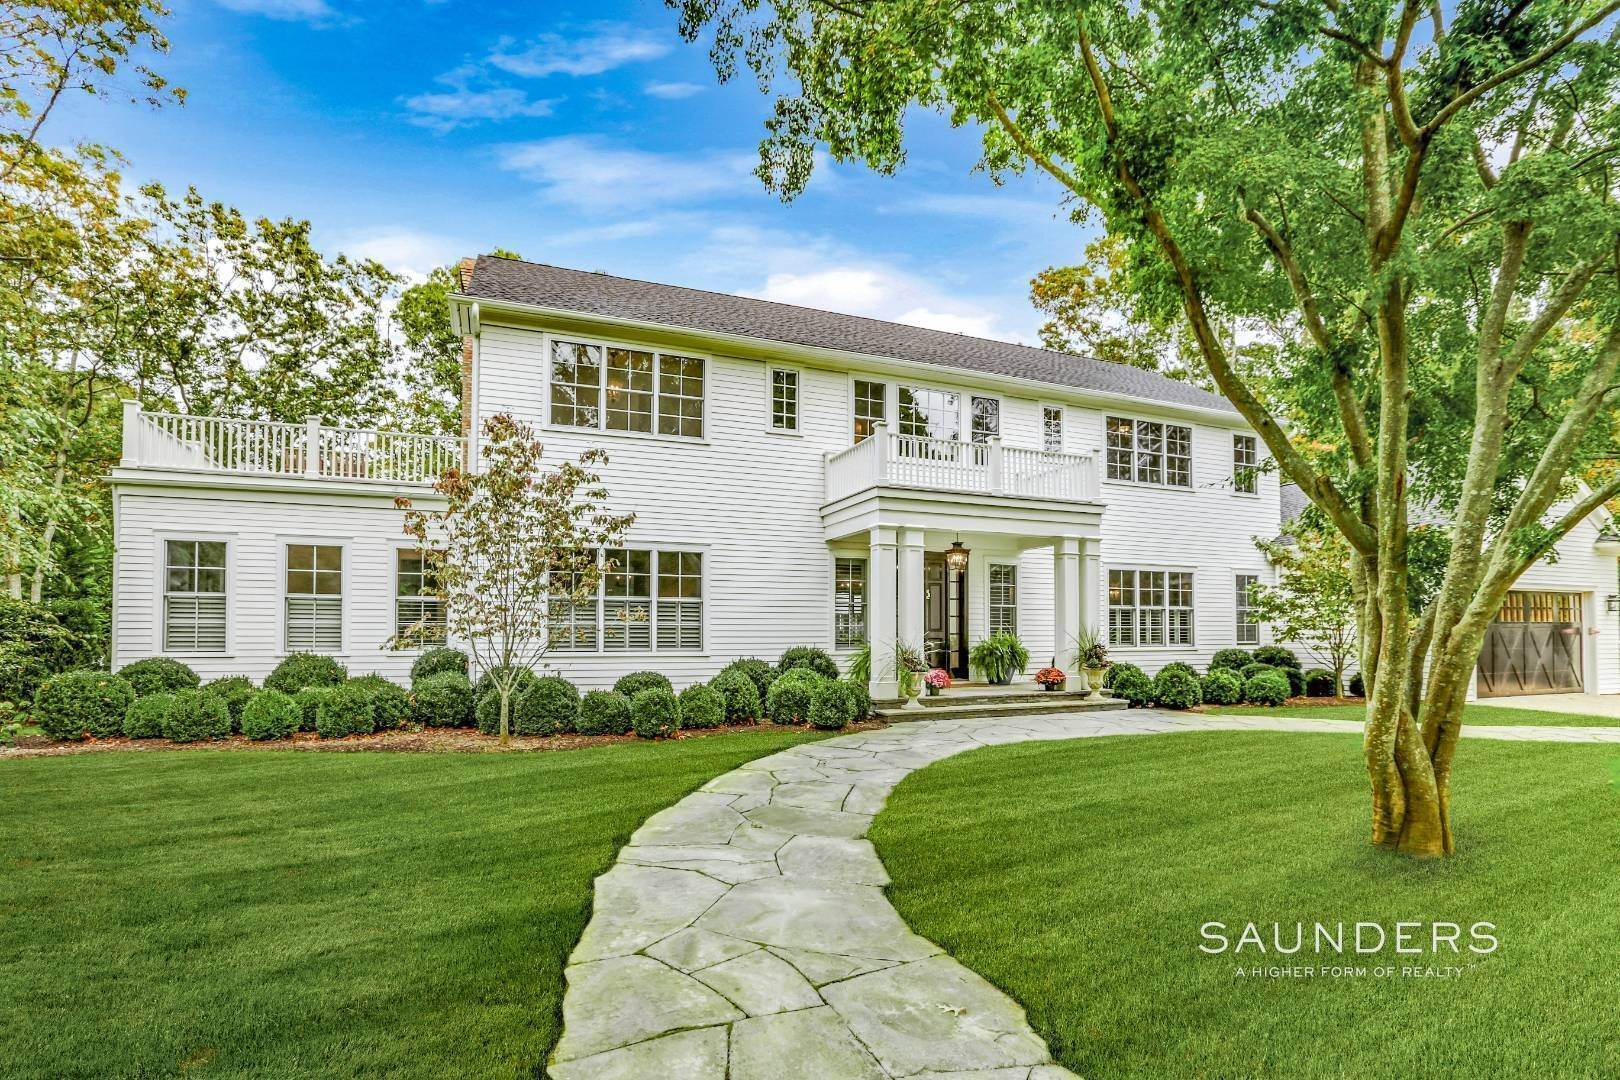 Single Family Homes for Sale at Newly Constructed In Sag Harbor Village 361 Madison Street, Sag Harbor, Southampton Town, NY 11963